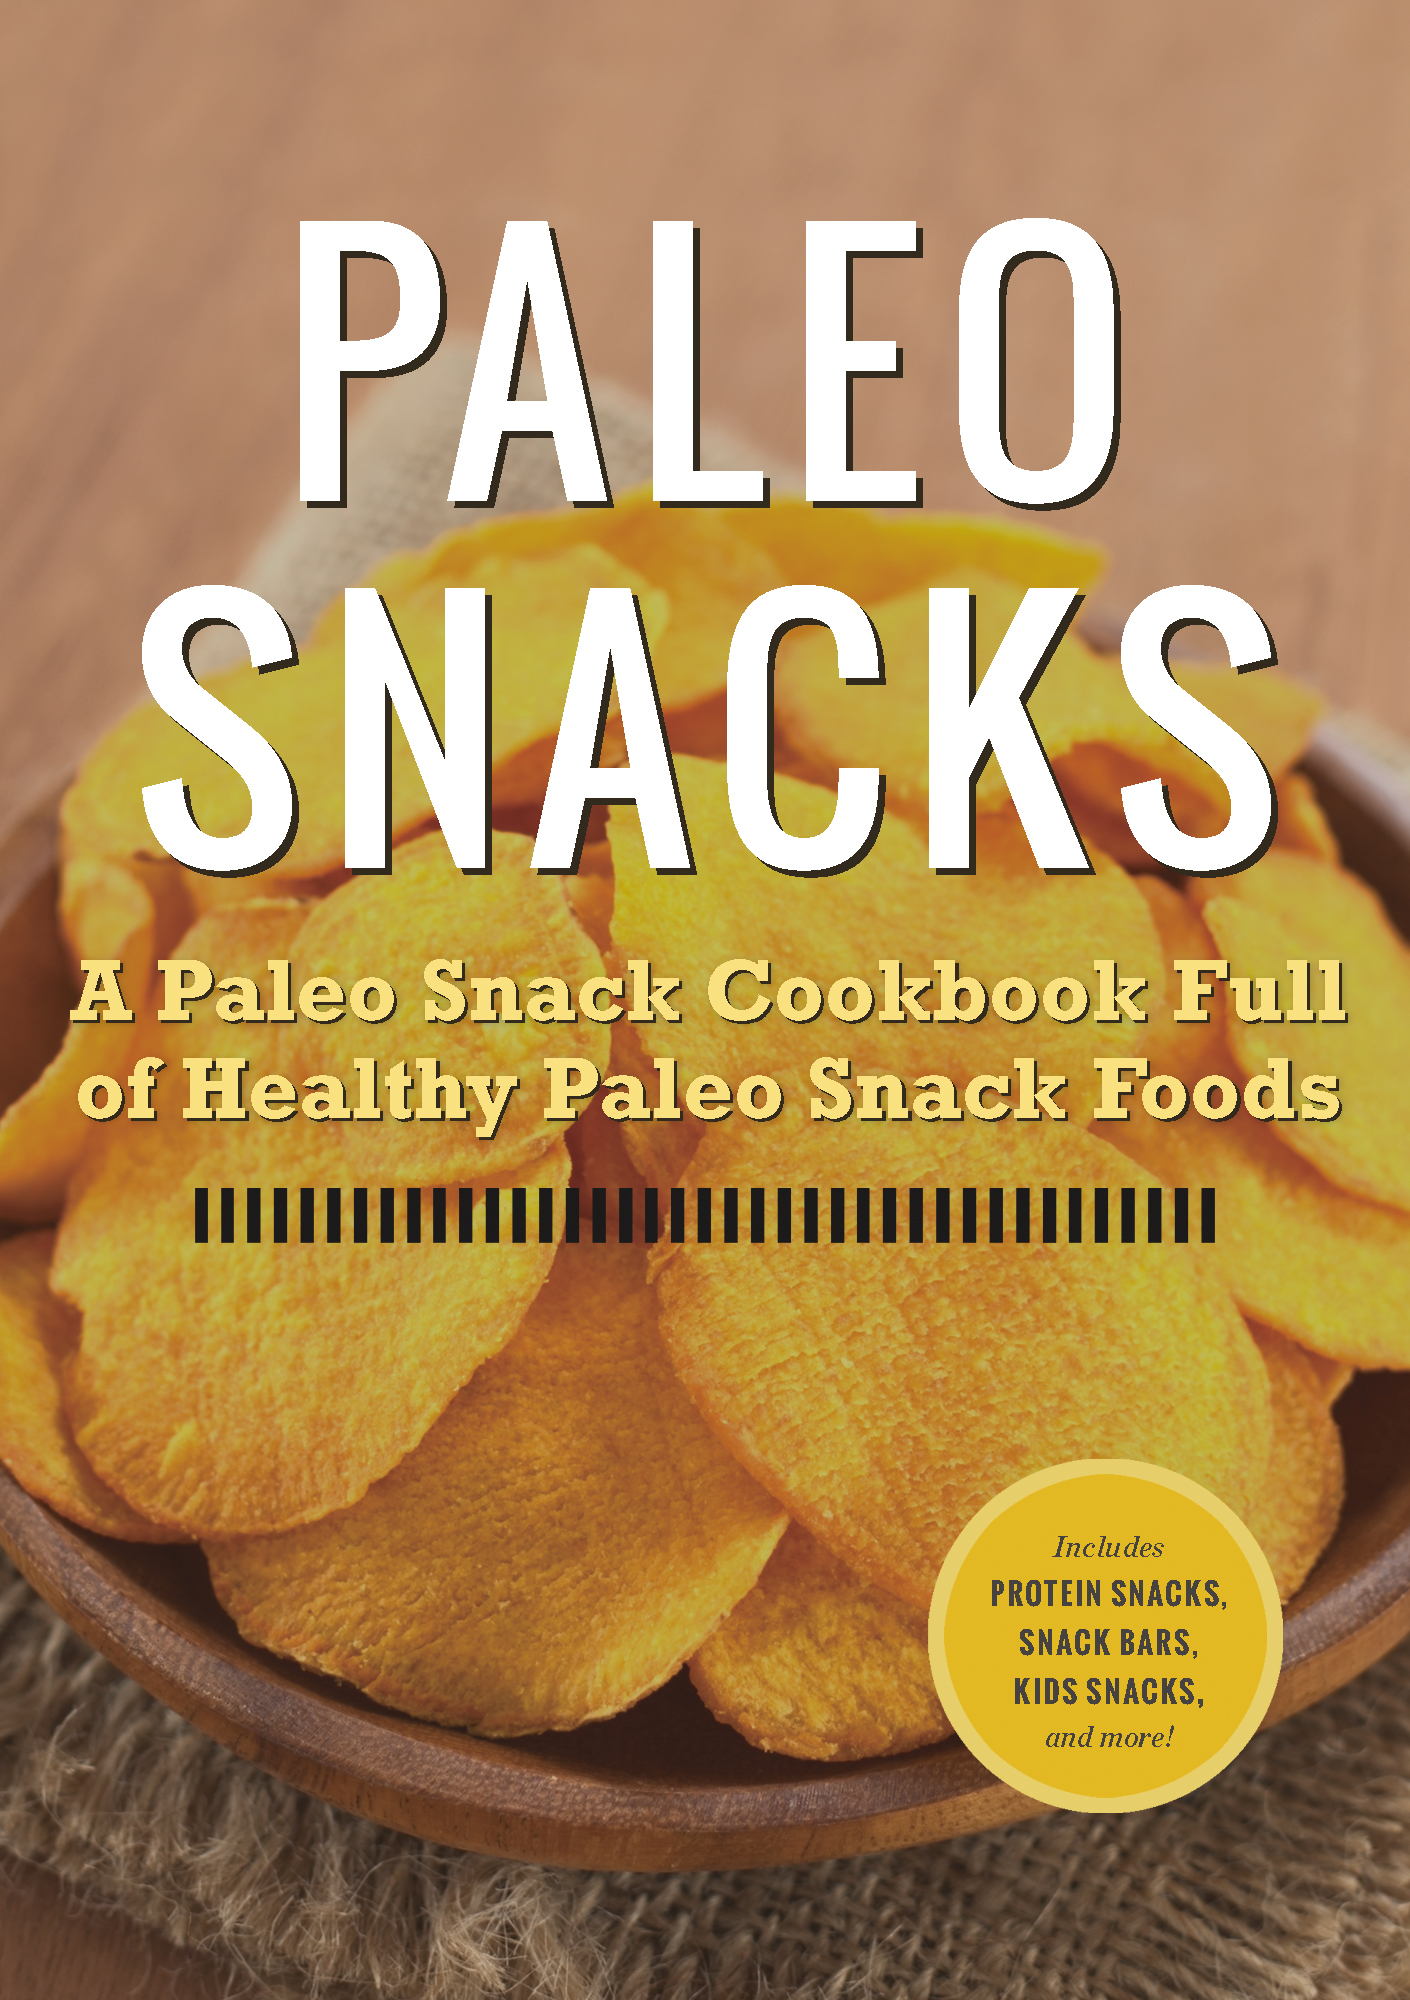 Paleo Snacks: A Paleo Snack Cookbook Full of Healthy Paleo Snack Foods